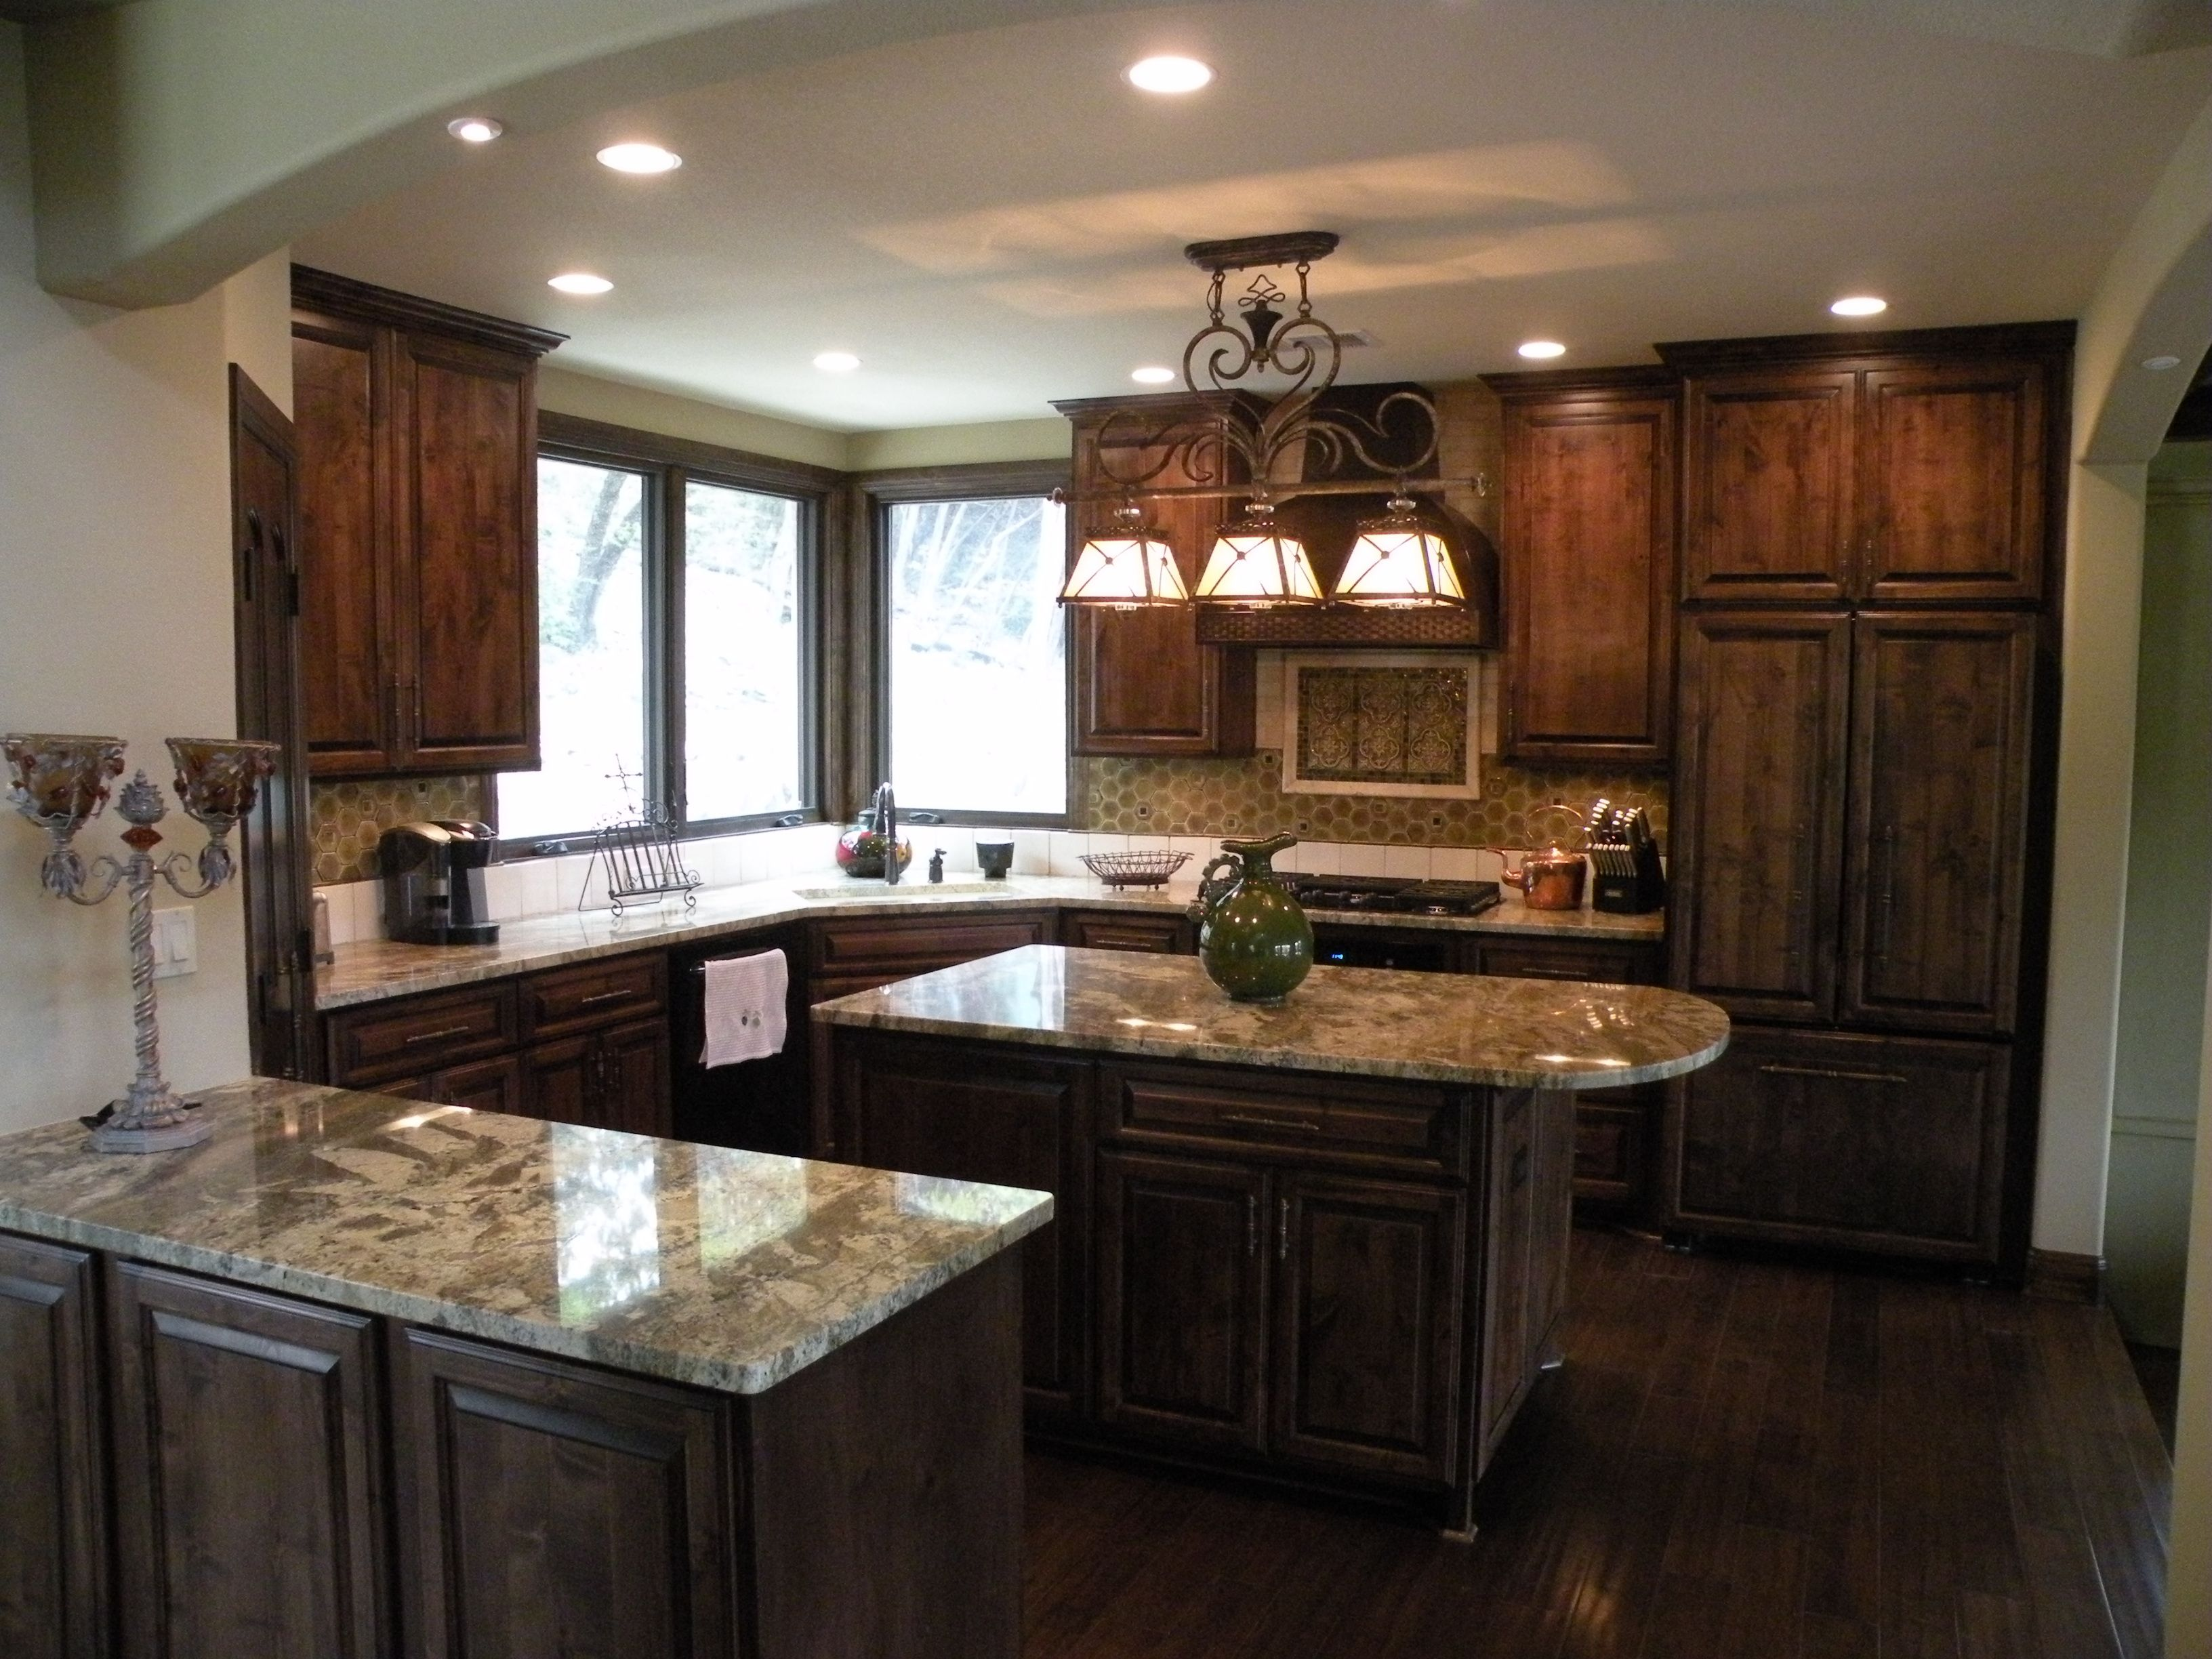 staining kitchen cabinets darker vent fan dark stained wood imgkid the image